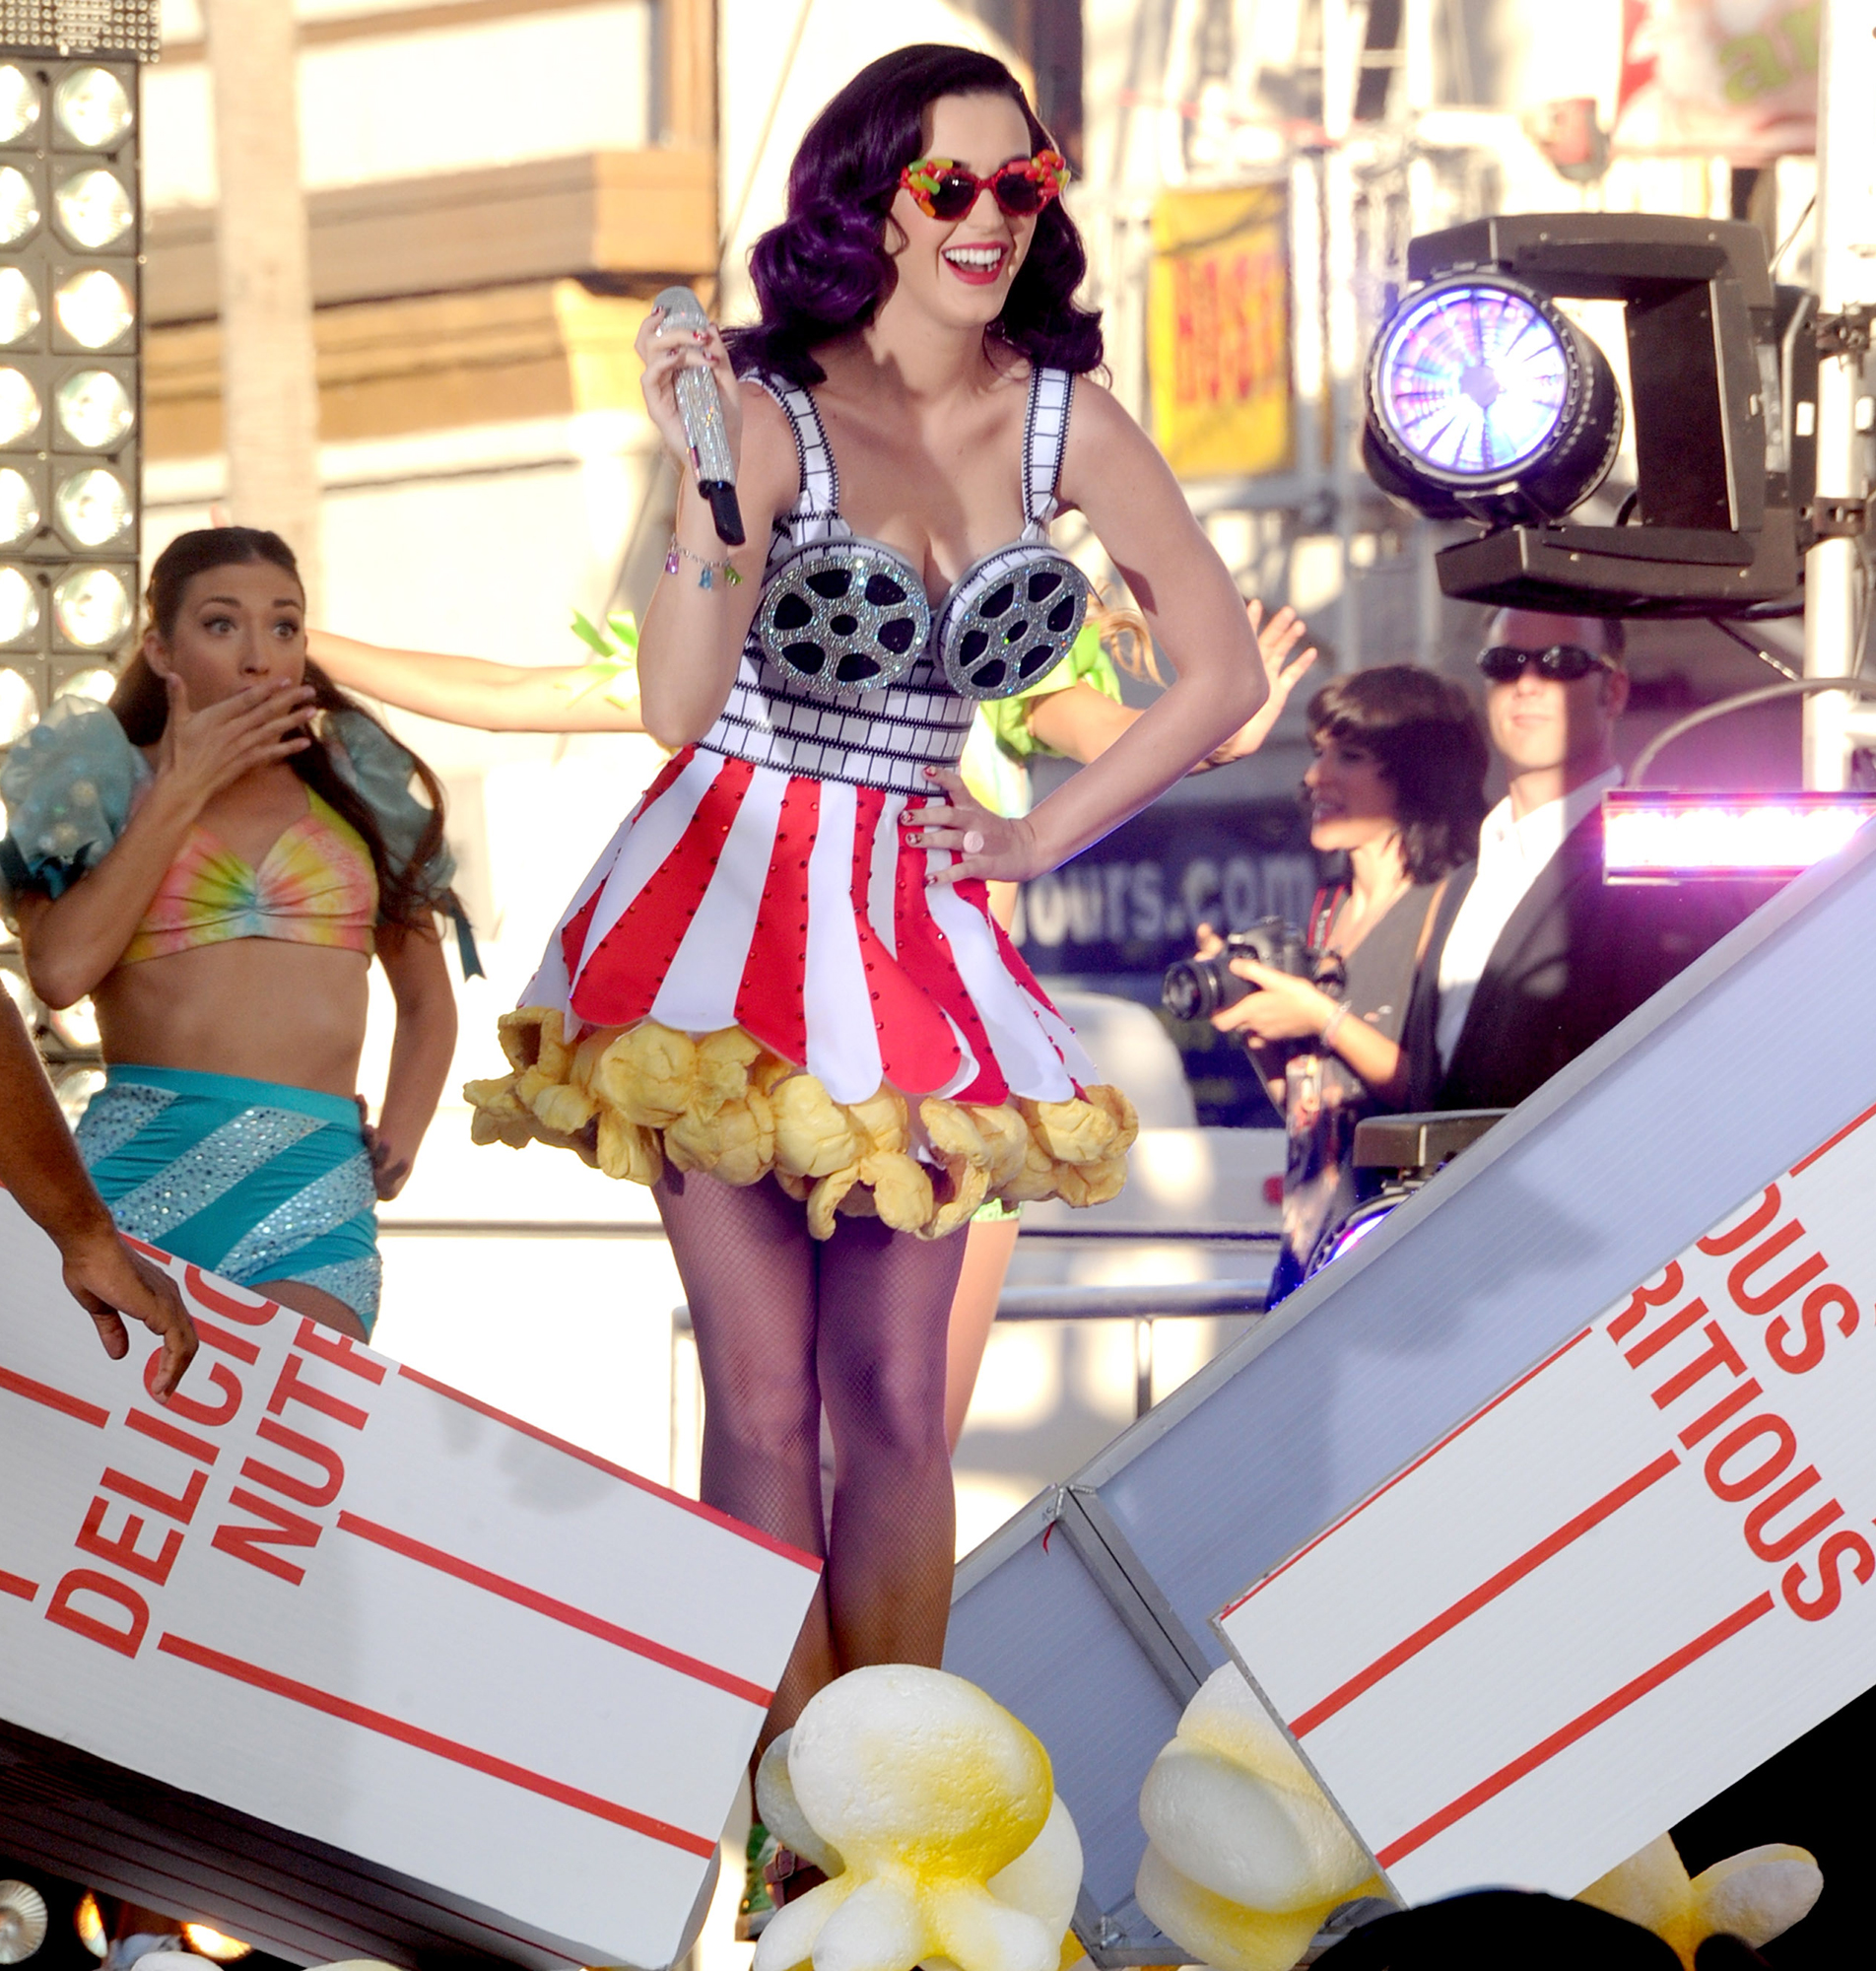 Katy Perry Dressed as Food - Perry performed in Hollywood in 2012 dressed as a carton of movie popcorn. The top of her ensemble was made to look like a film strip, while the bottom featured buttered popcorn kernels dangling from it.